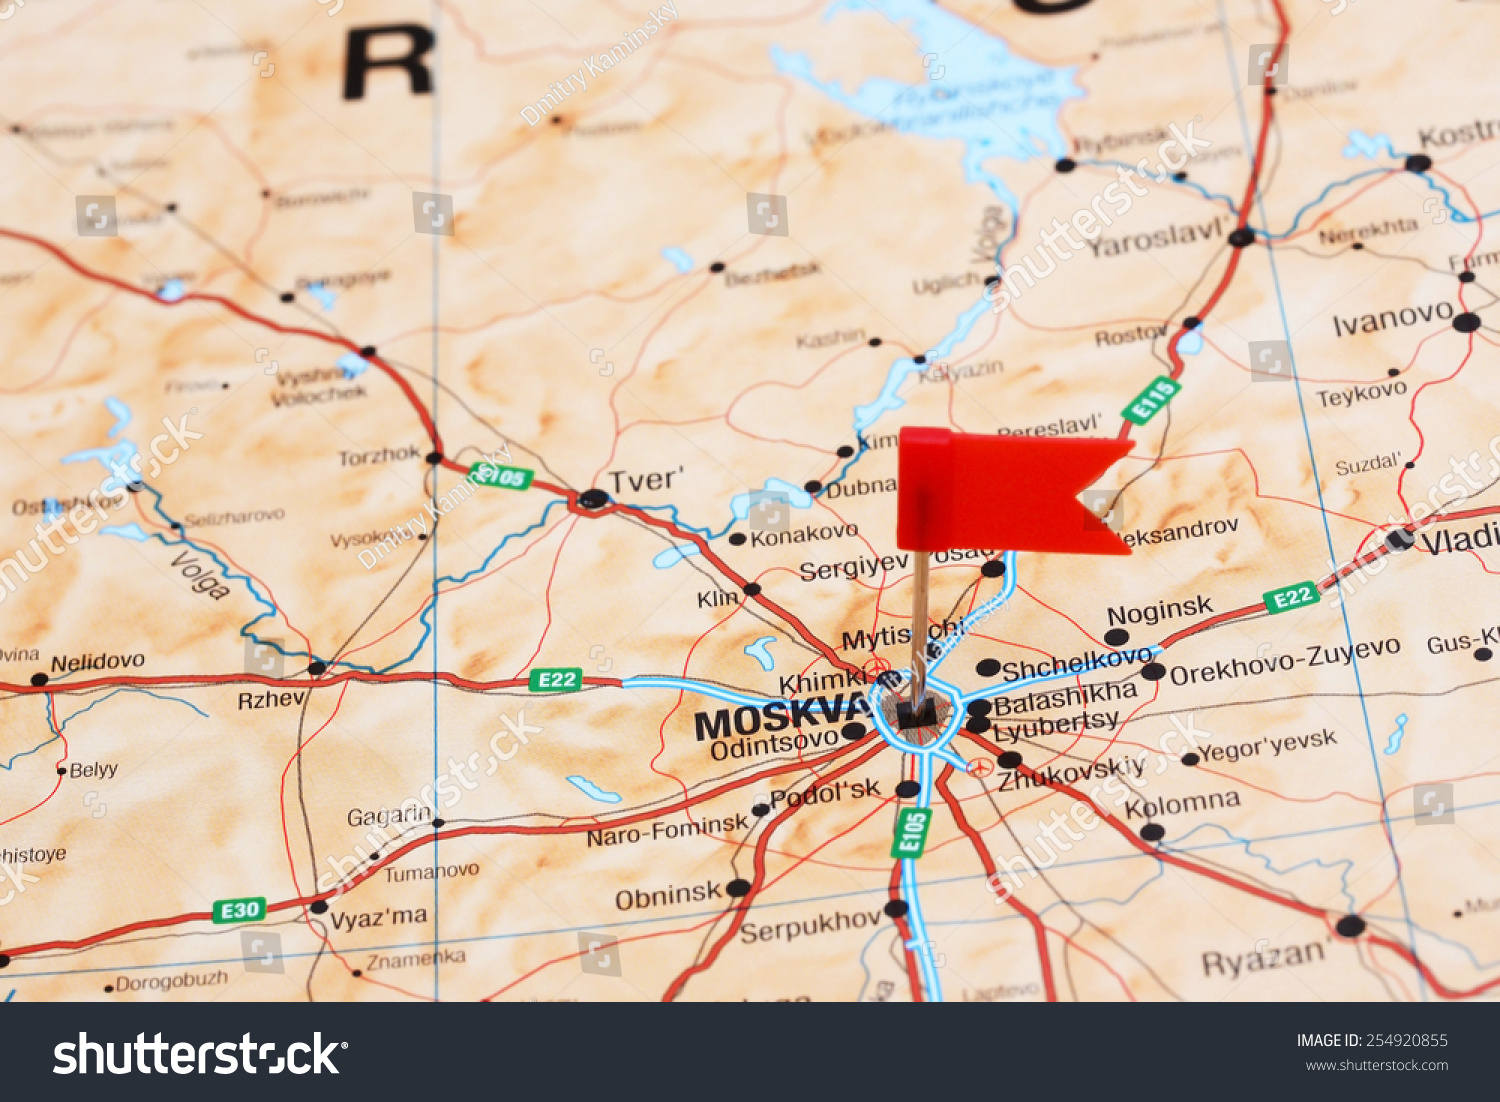 Moscow Pinned On Map Europe Stock Photo Edit Now 254920855